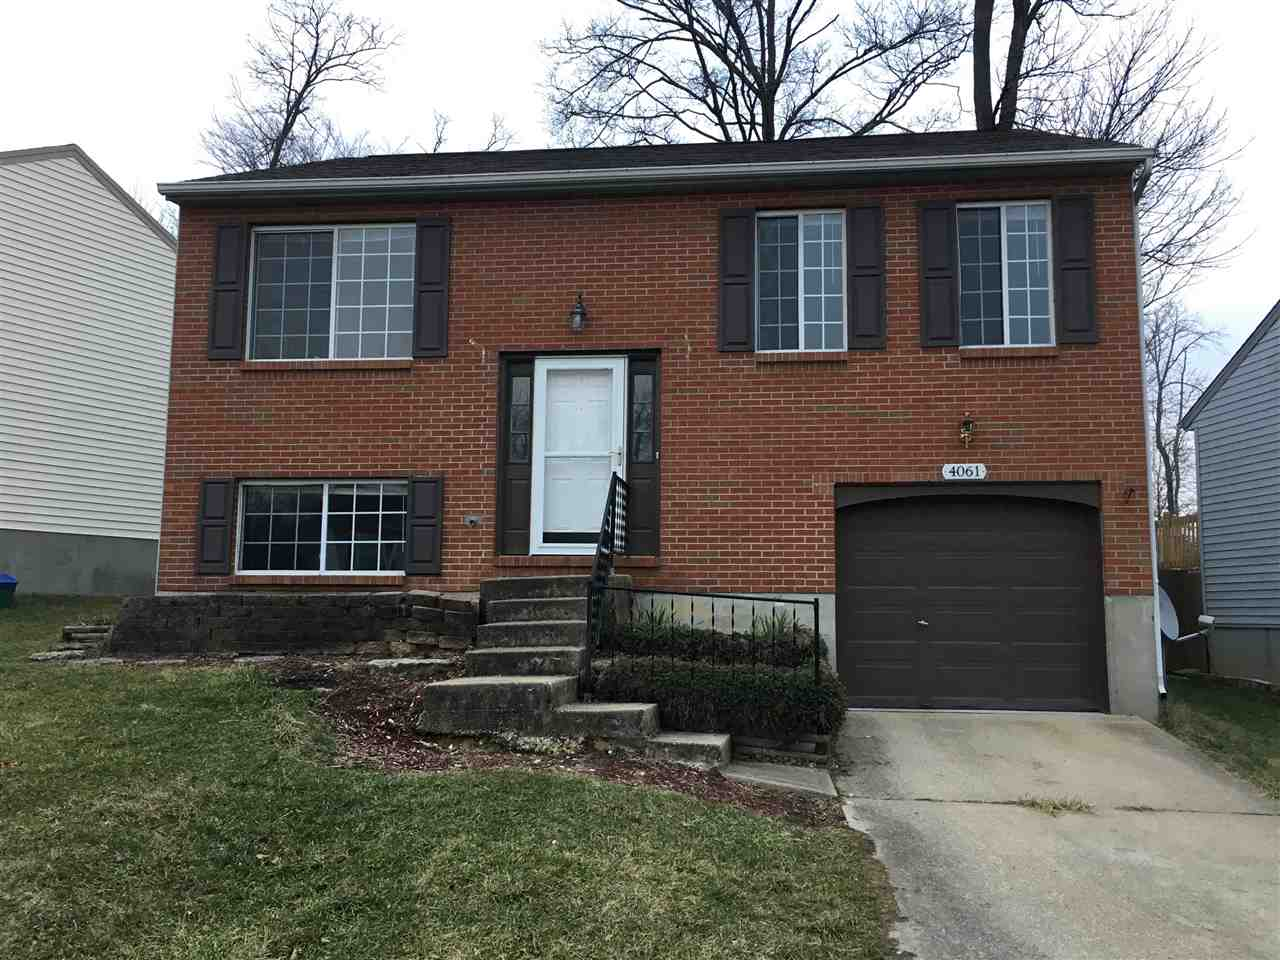 real estate photo 1 for 4061 Woodchase Erlanger, KY 41018